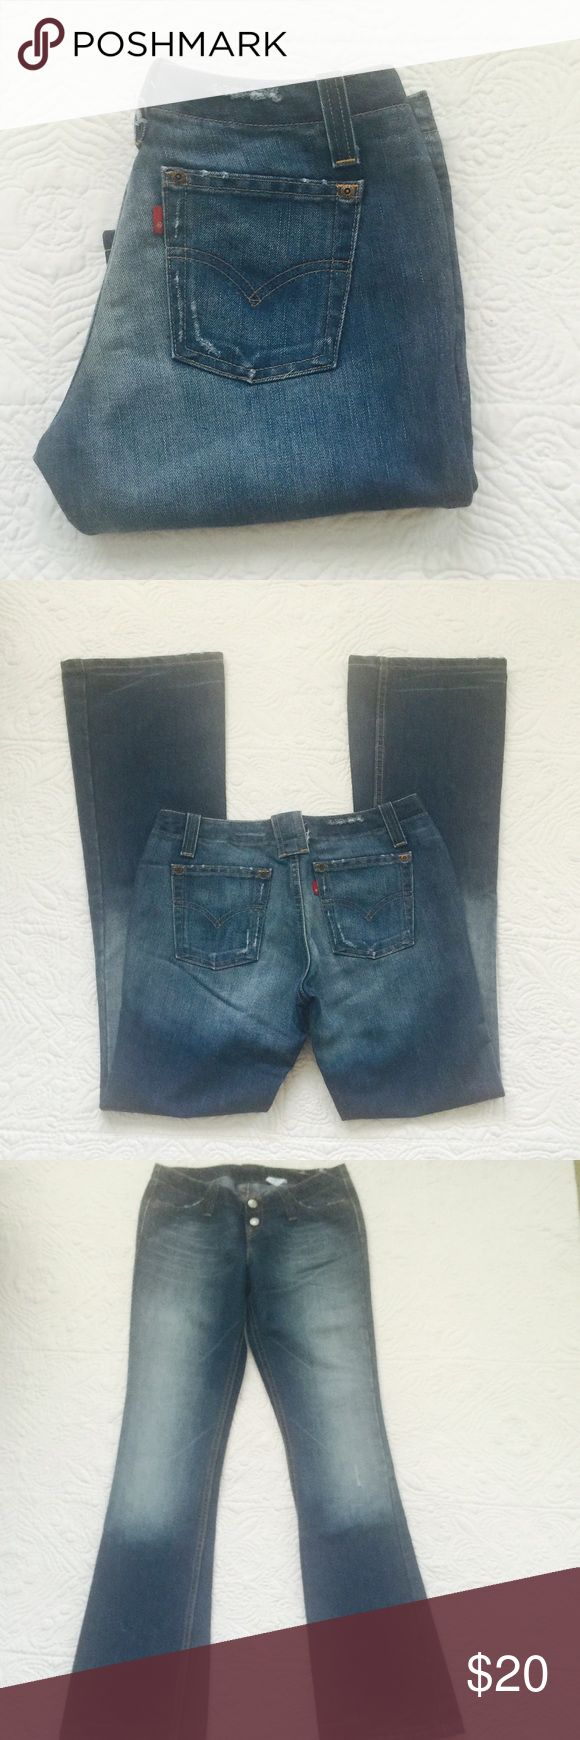 """Levi's 520 jeans New without tag. Rise 7"""" inseam 32"""". 58% cotton 42% polyester Levi's Jeans Boot Cut"""